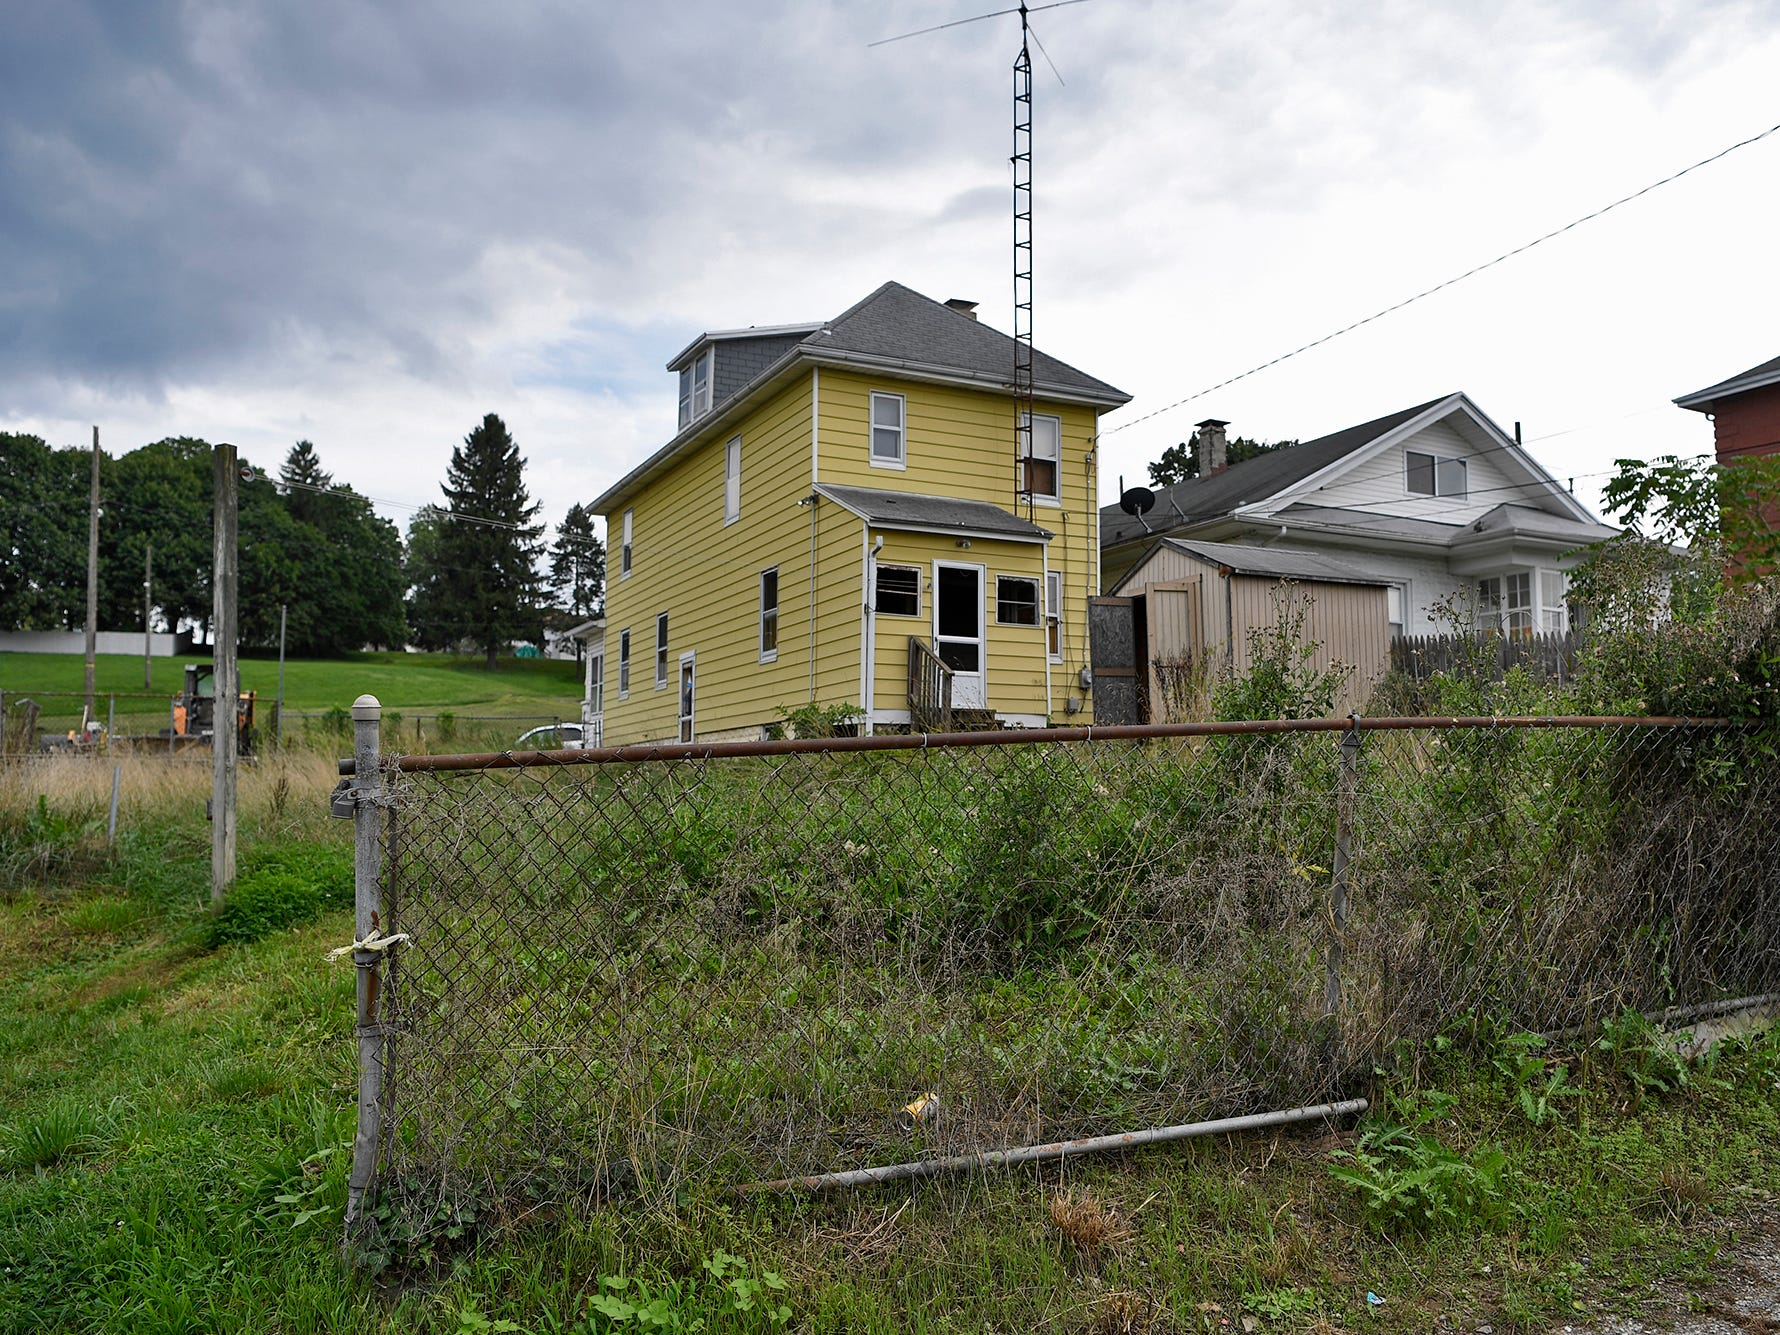 West York Borough Police and the Borough Codes Enforcement office are teaming up to fight blight. Police Chief Matthew Millsaps says that there are at least 30 properties, including this one two doors down from the Borough office, currently being pursued for cleanup. Wednesday, August 14, 2018. John A. Pavoncello photo